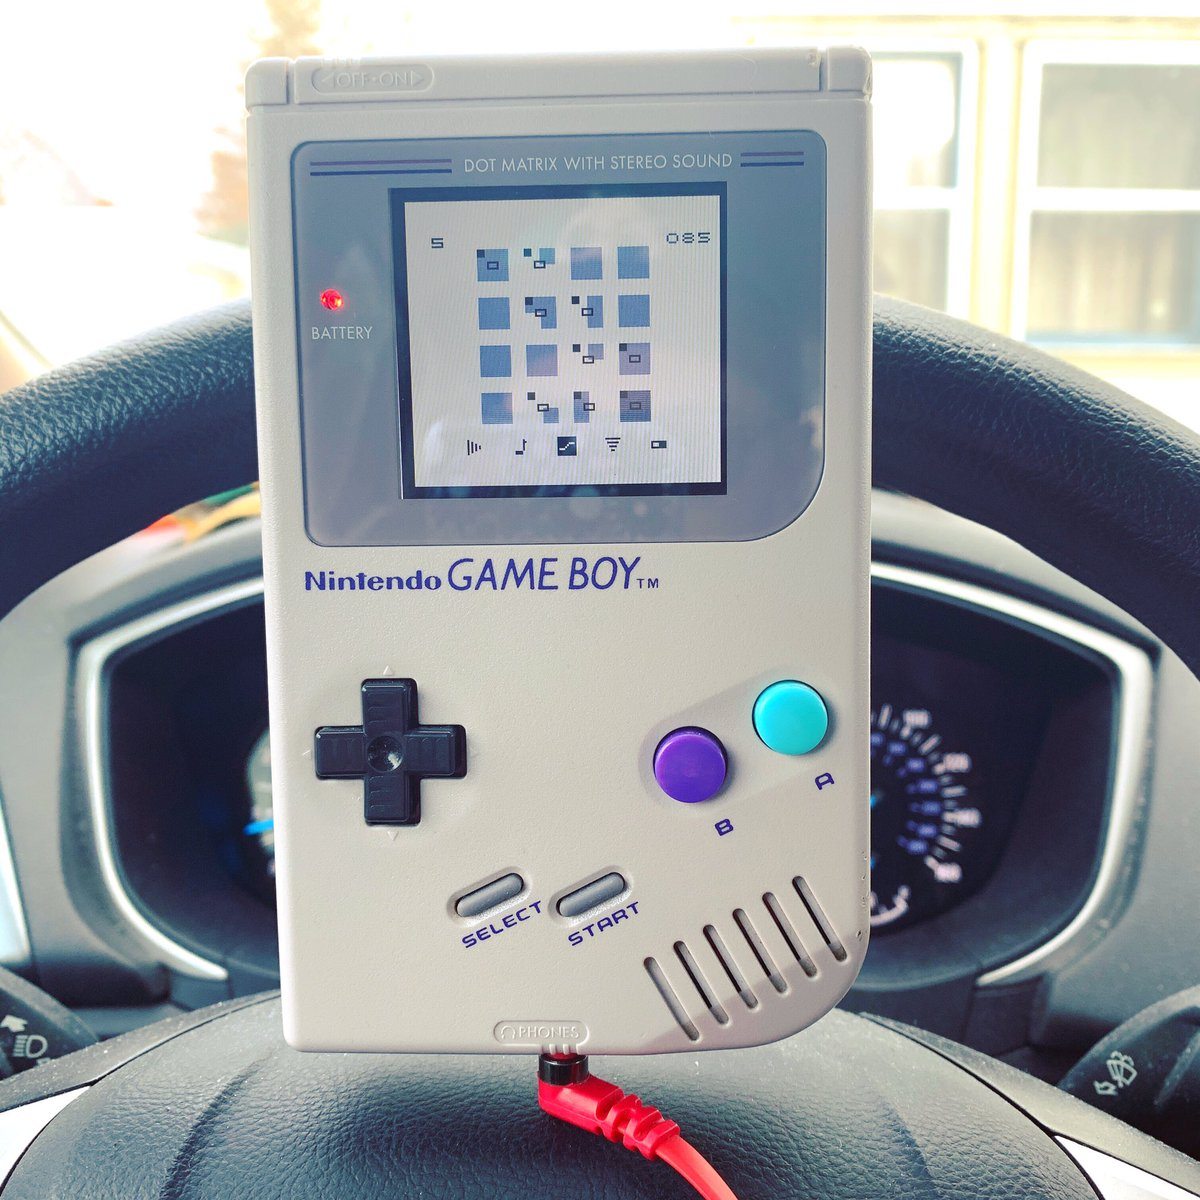 making gameboy beats in the whip... aka waiting for boop outside the eye doctor 🍔🍟🍕🥙🌮🌯🥗 . . . . . . #heady #kush #lofi #vibes #rad #dank #vaporwave #aesthetic #wavy #af #lsdj #8bit #synth #op1 #nanoloop #synthesizer #synthwave #retrowave #chill #me #qotd #dreampop #gameboy